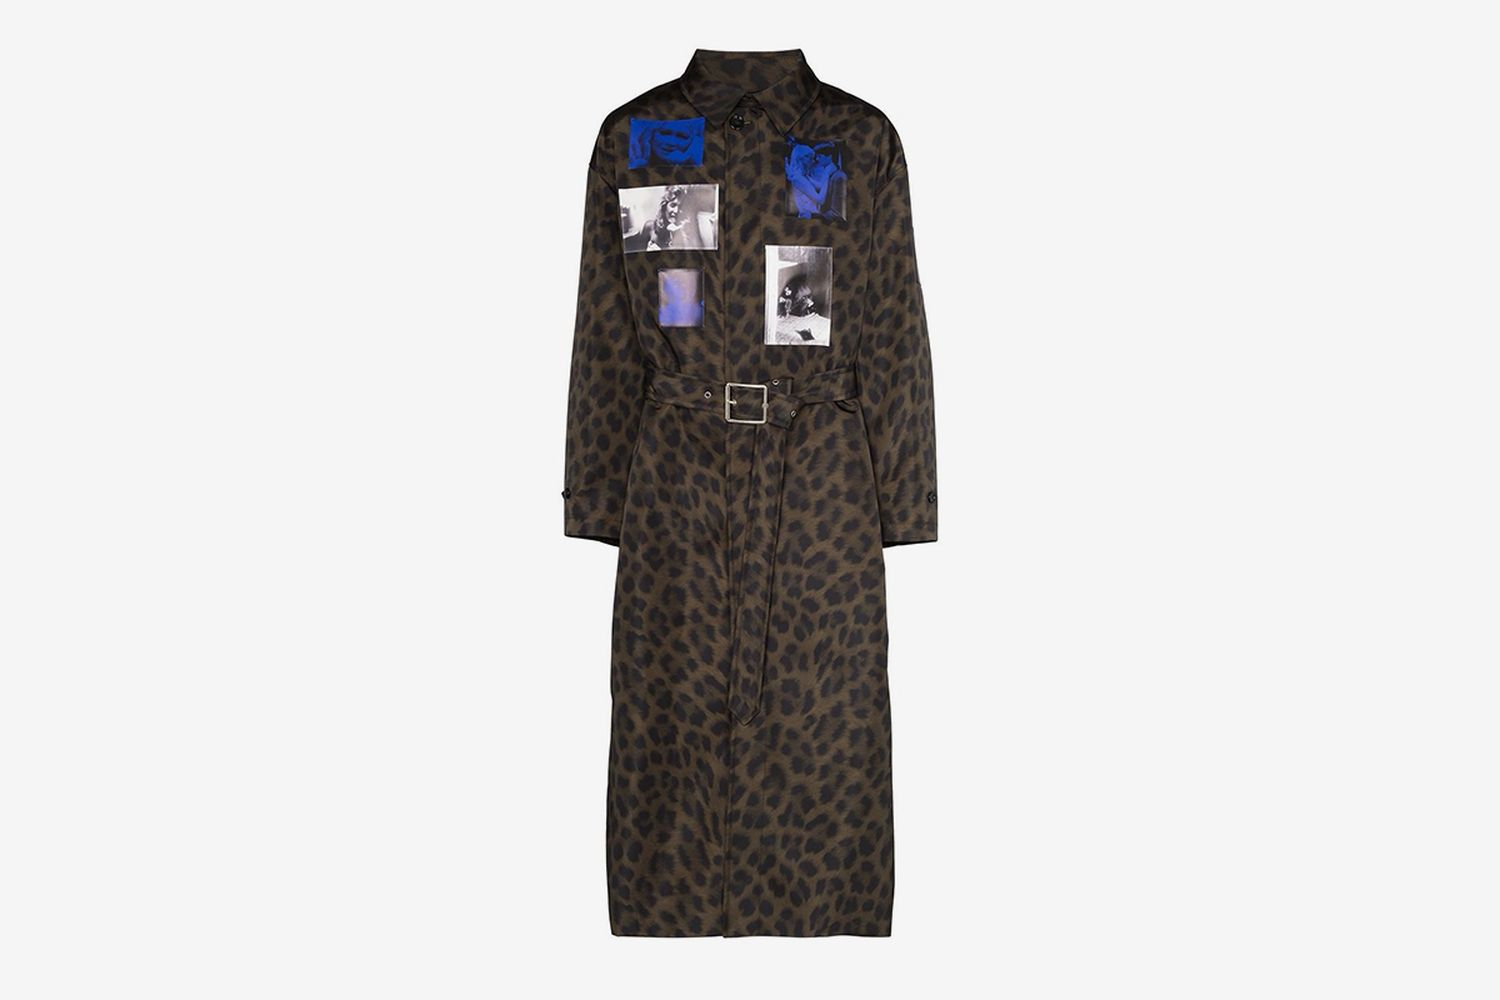 Leopard Print Photo Coat